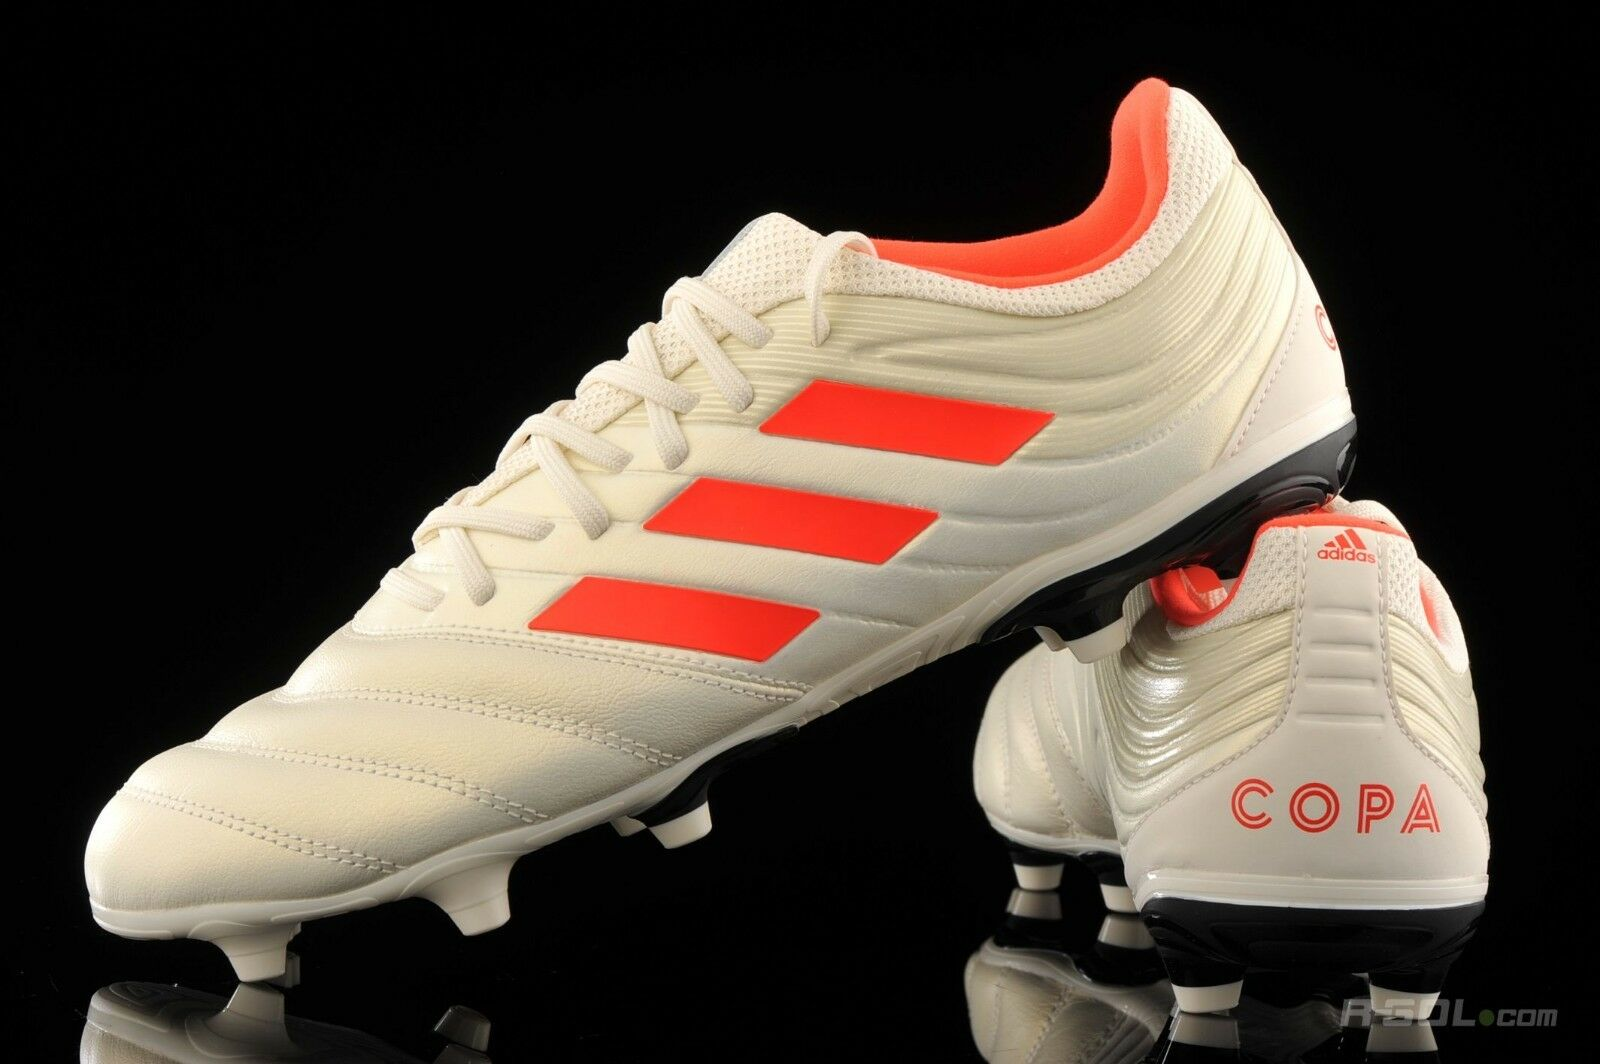 a38e3c8ba Adidas Copa 19.3 FG Soccer Cleats Off White Solar Red BB9187 8 8.5 9 9.5 10